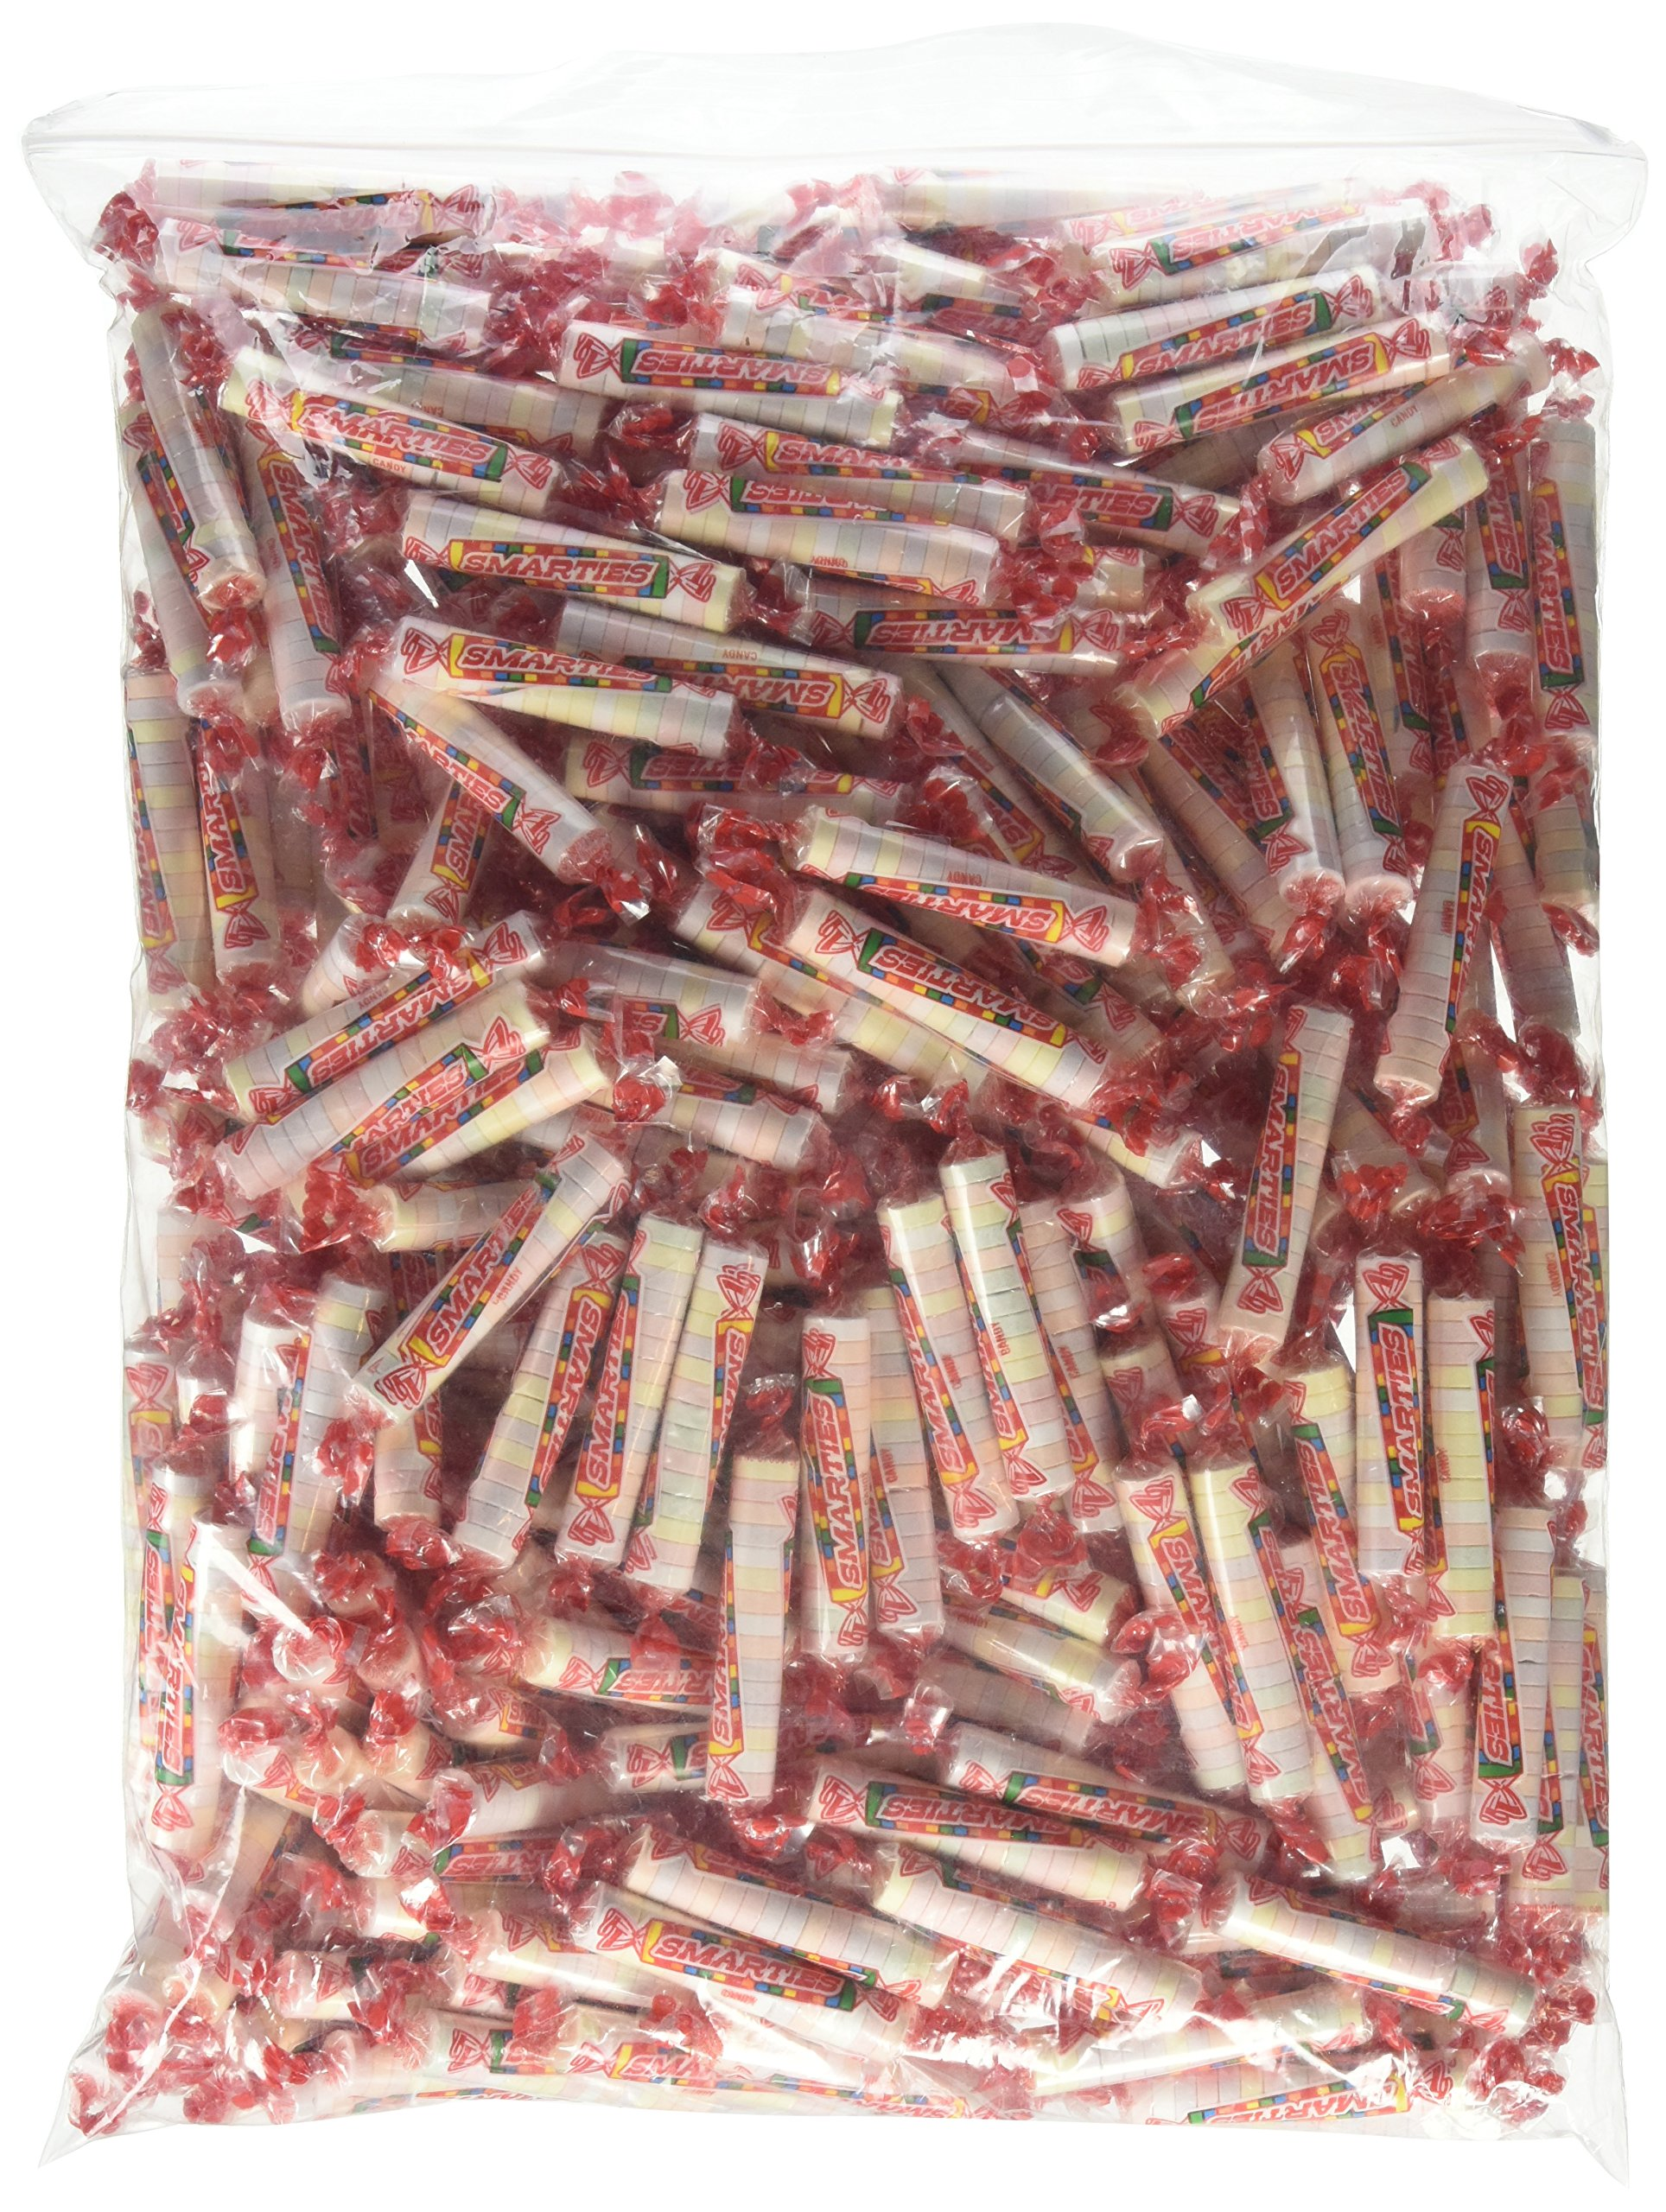 Cede Smarties Bulk 10 LBS. Case by Smarties Candy